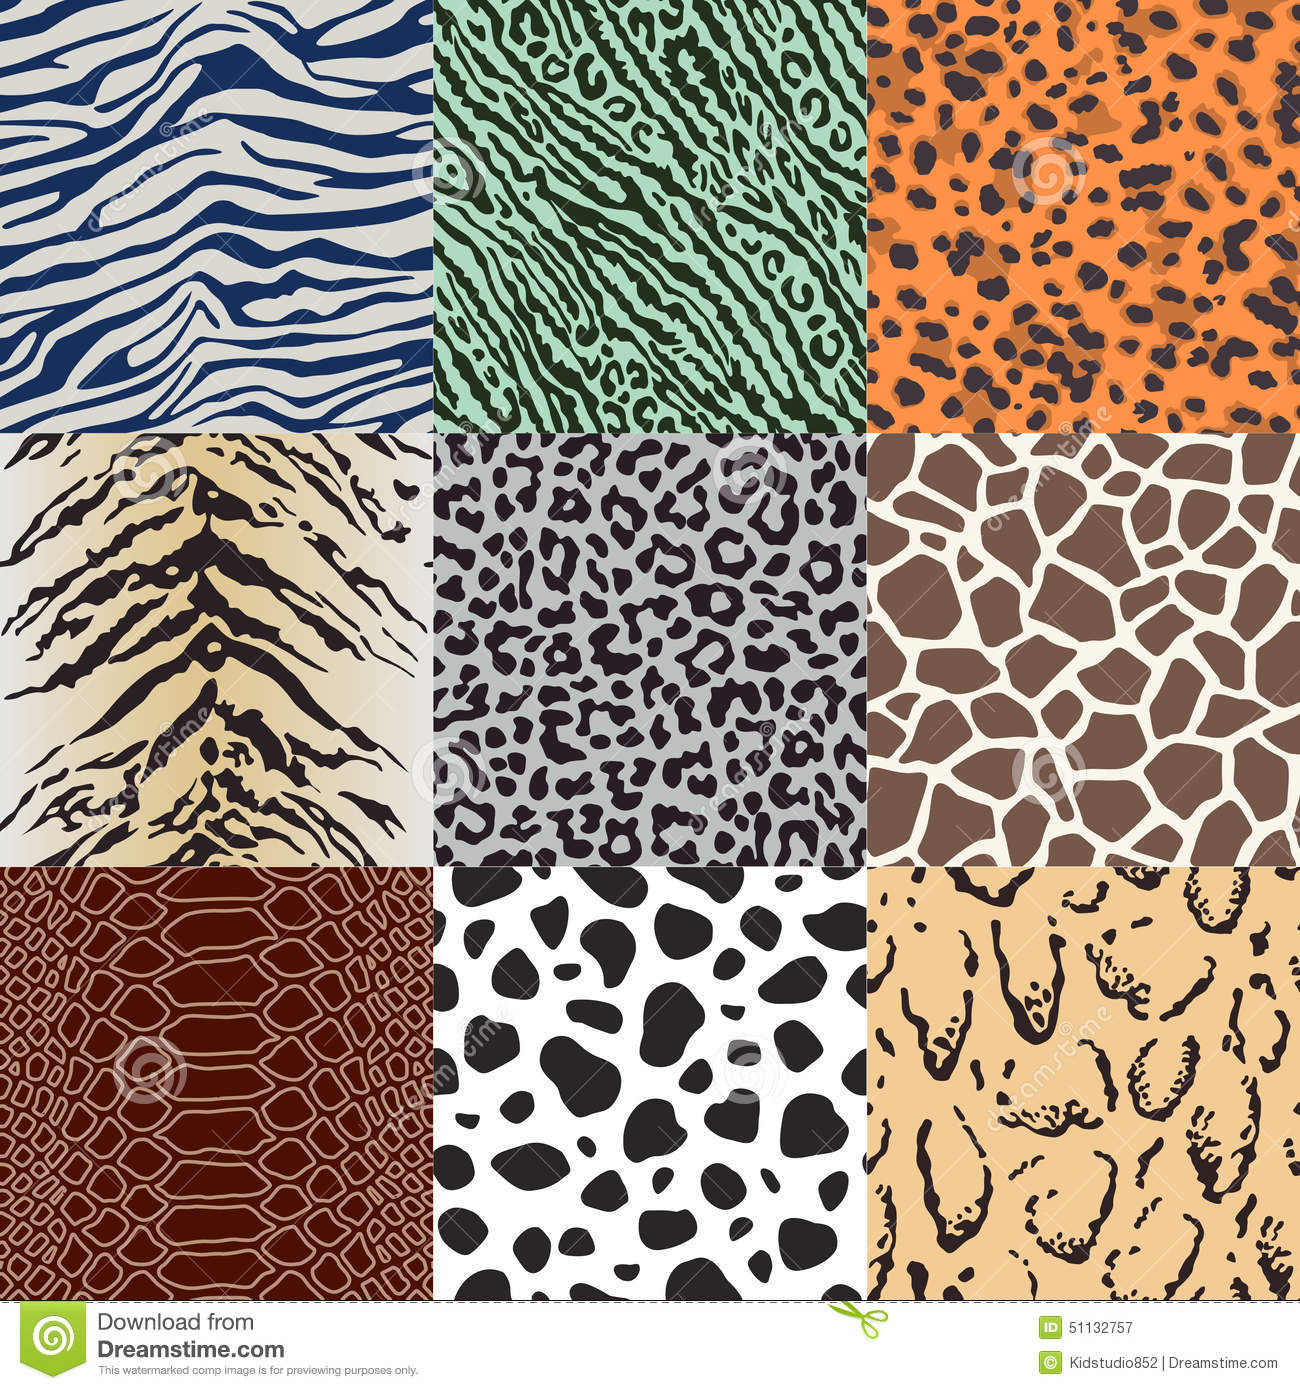 animal skin patterns seamless - photo #12